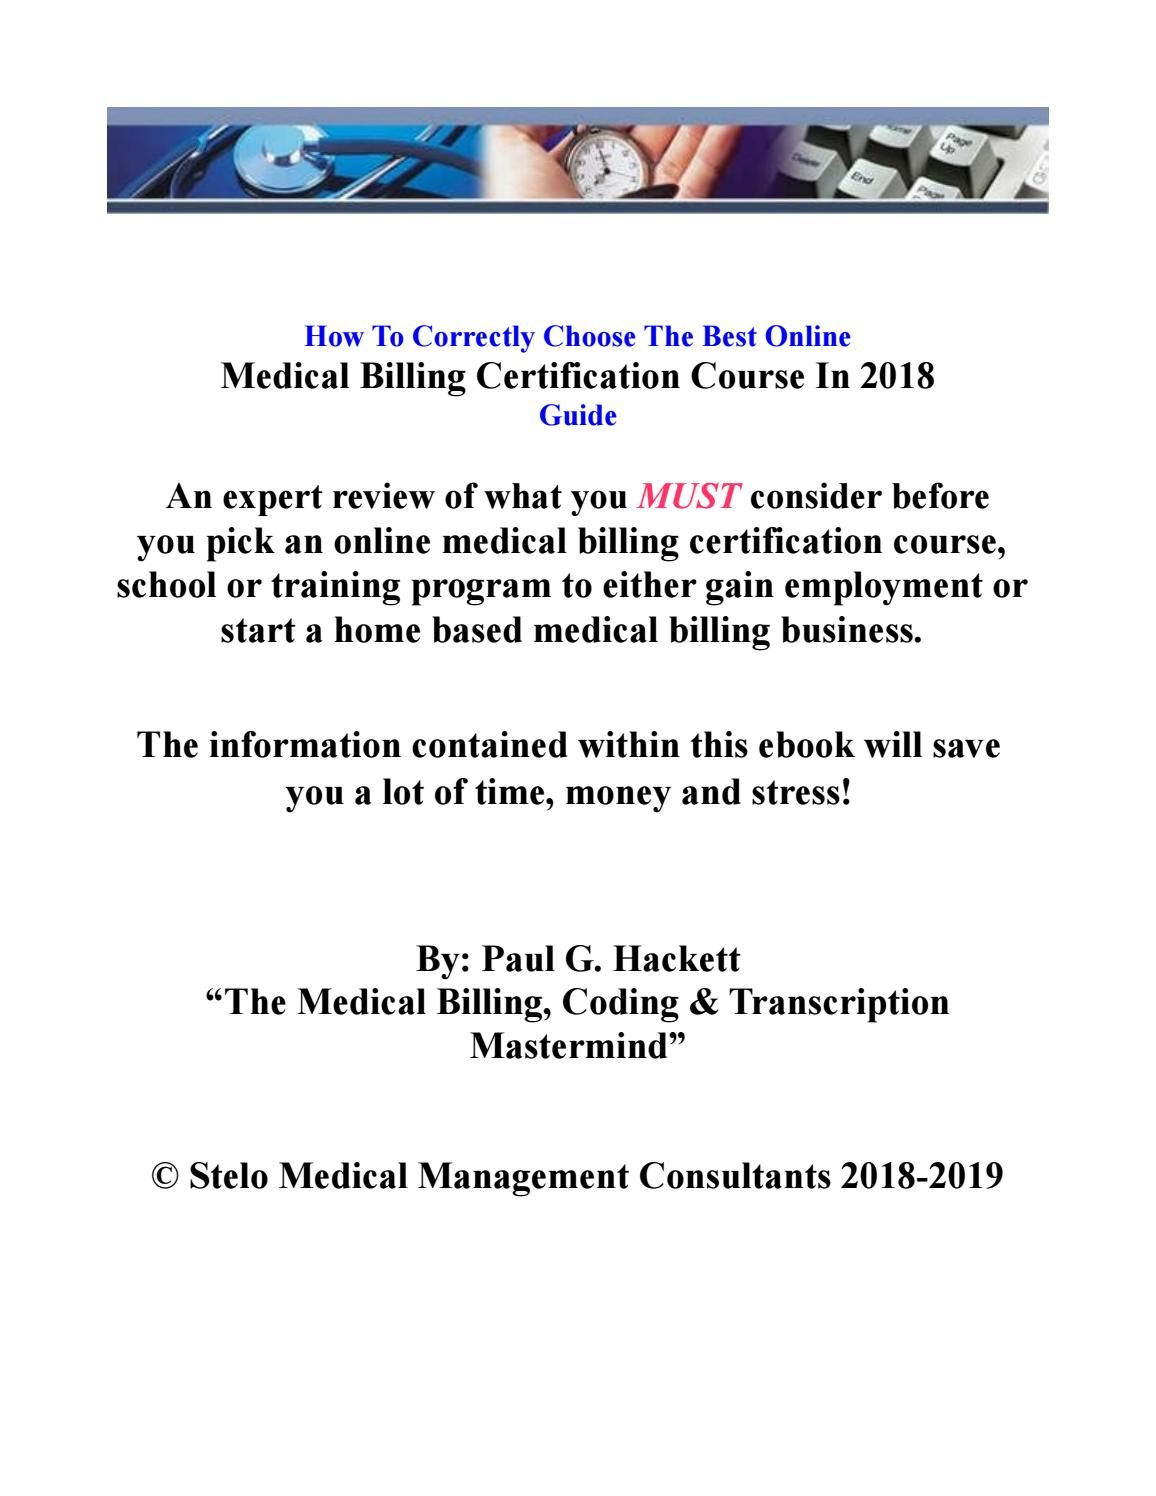 Medical Billing Online Courses Review 2018 Home Based Business